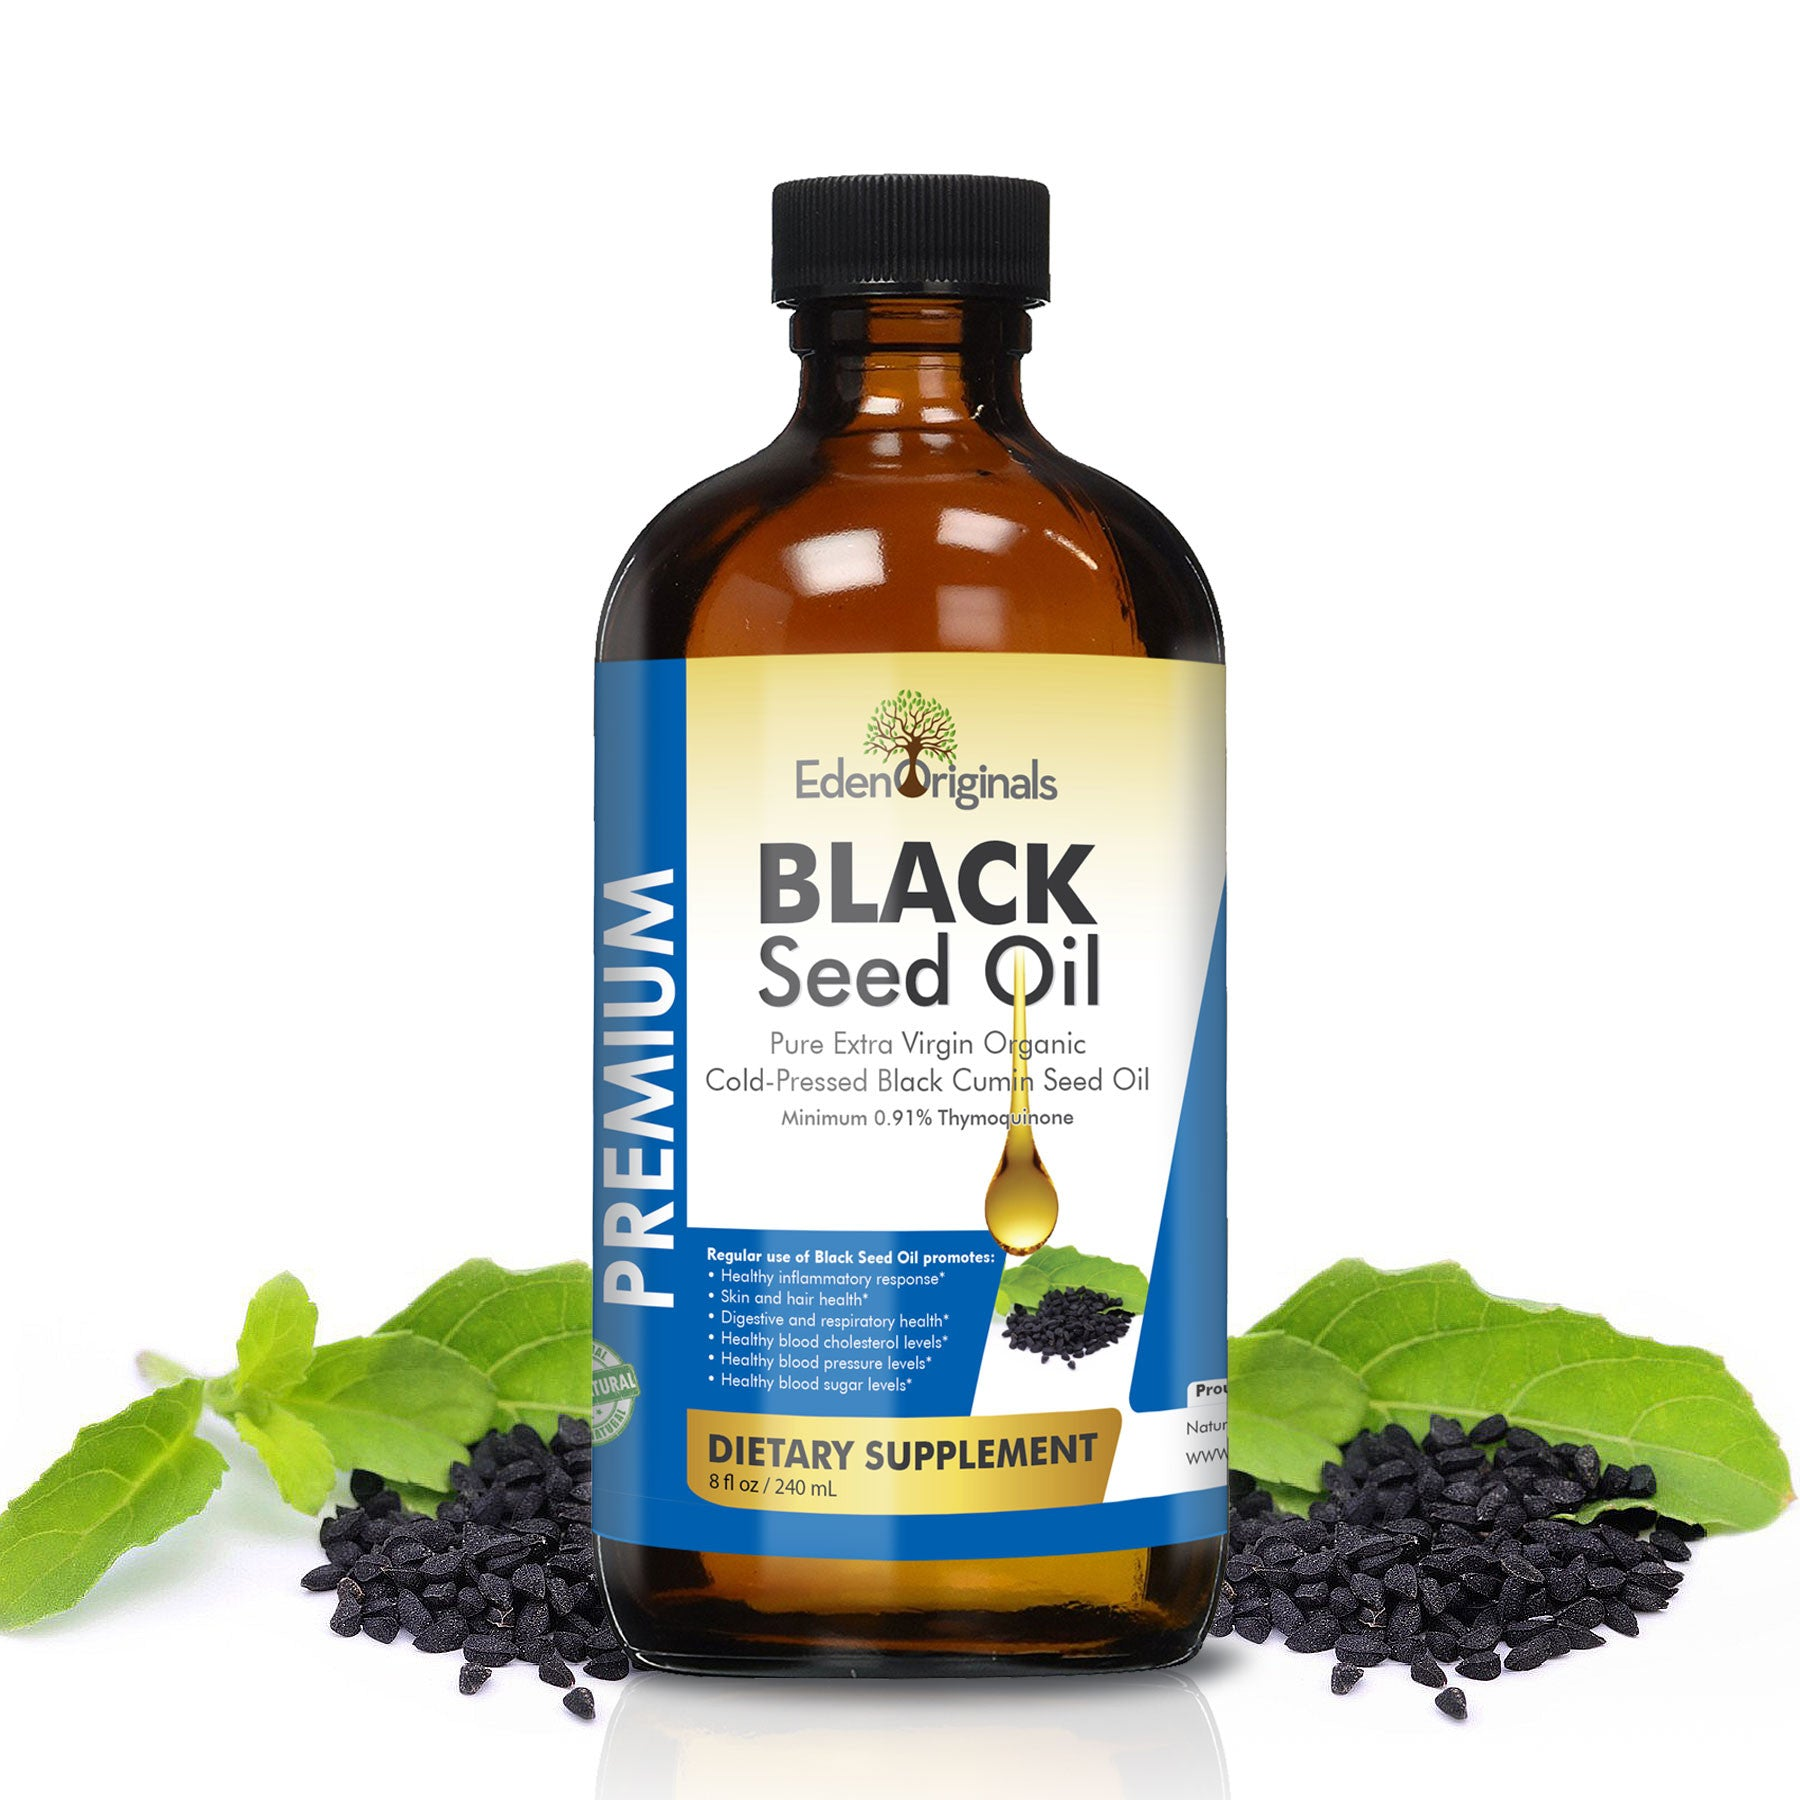 The Blessed Blackseed Oil